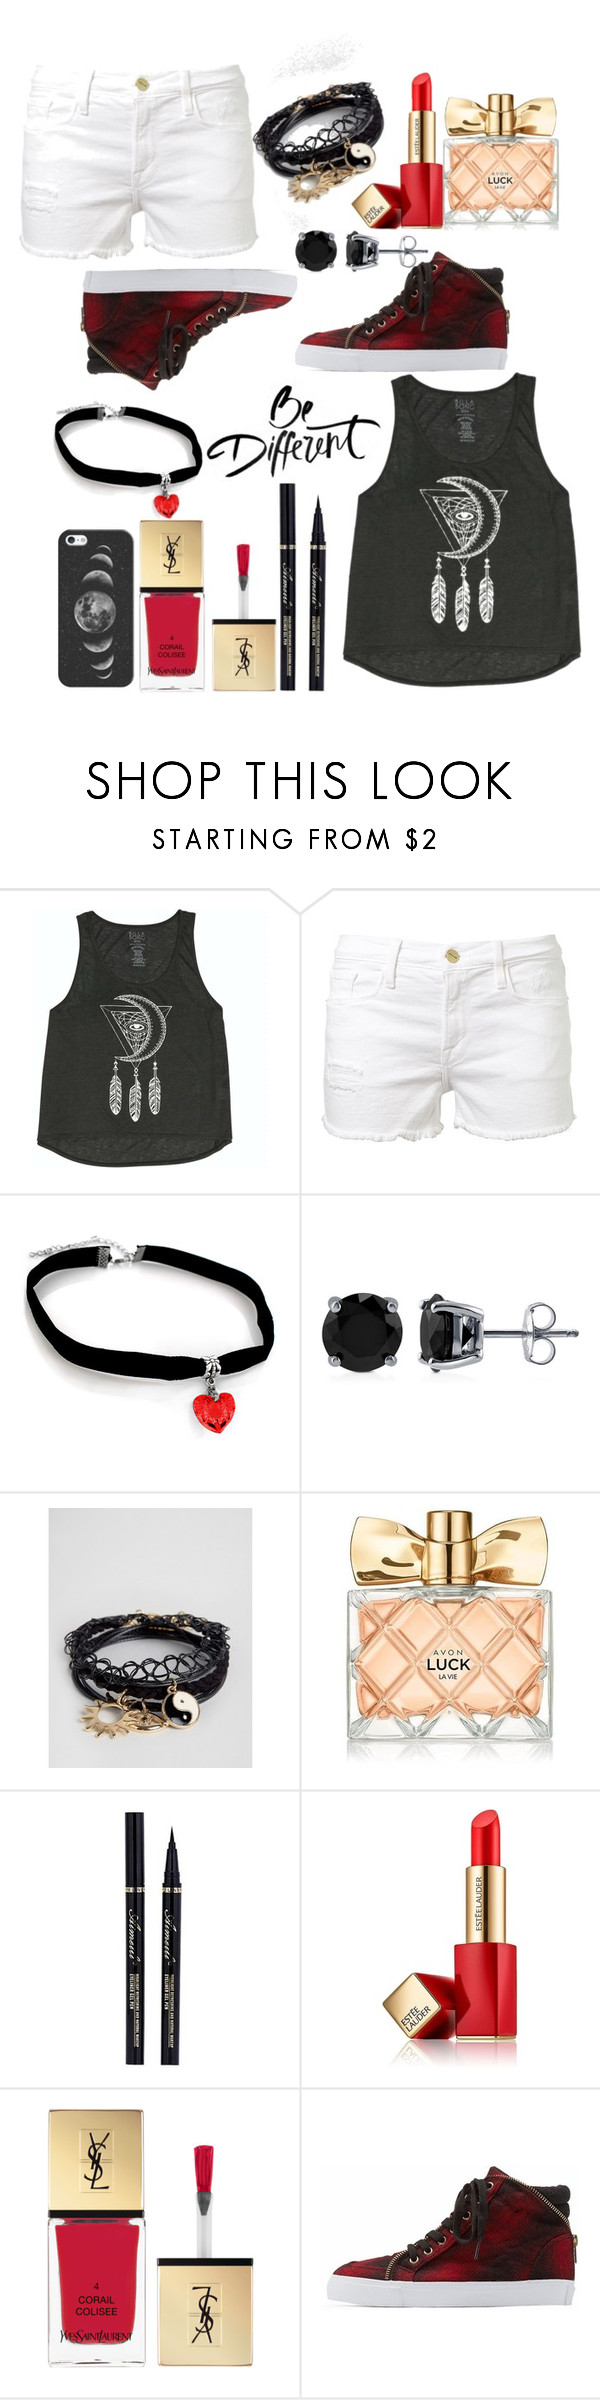 """Untitled #22"" by lonely-or-broken ❤ liked on Polyvore featuring Billabong, Frame Denim, BERRICLE, ASOS, Avon, Estée Lauder, Yves Saint Laurent, Soda and Casetify"